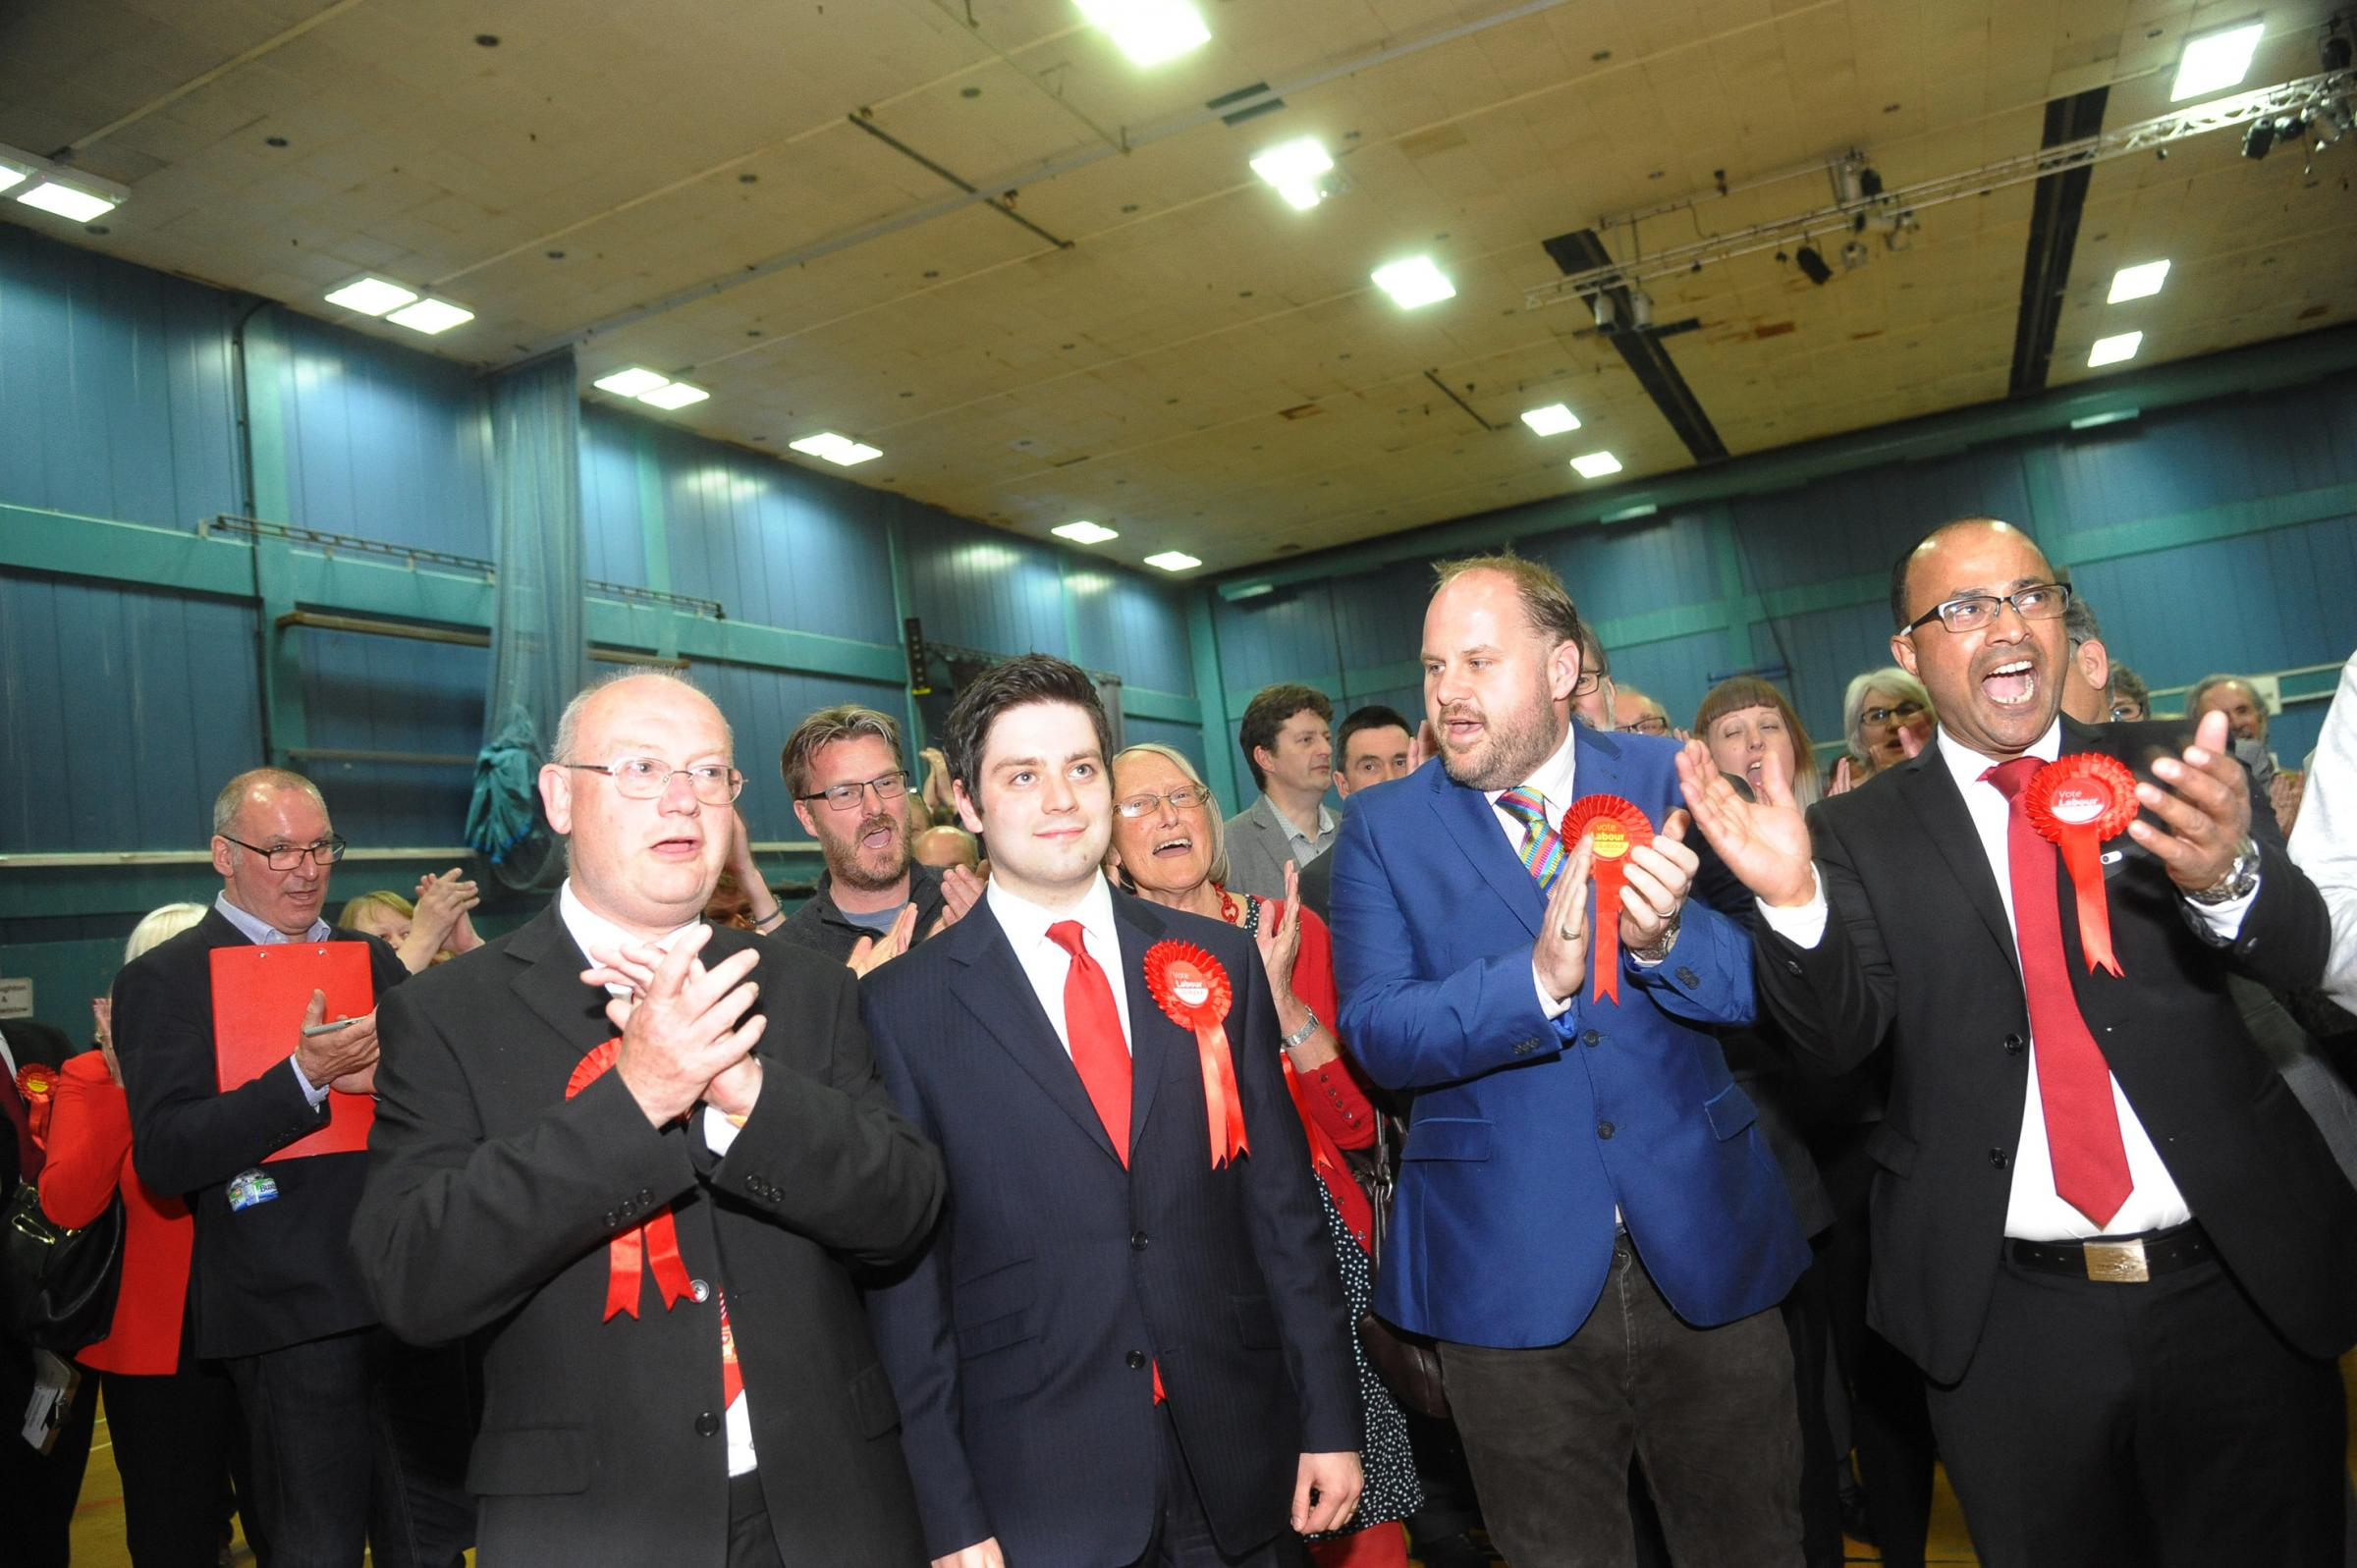 Matthew Courtliff clinched victory at the local elections in May